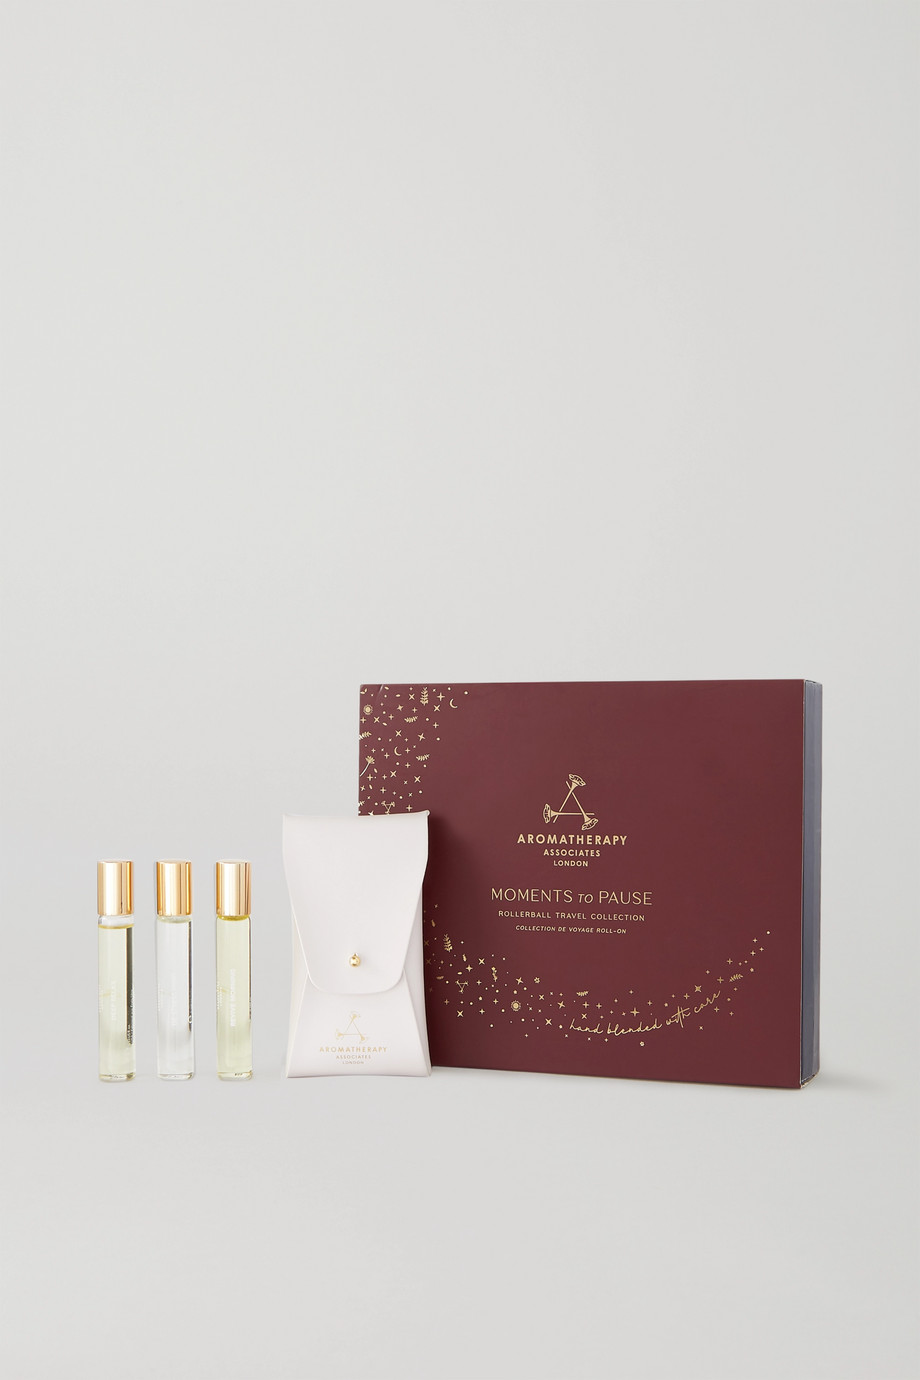 Aromatherapy Associates Moments to Pause Rollerball Travel Collection, 3 x 10 ml – Reiseset